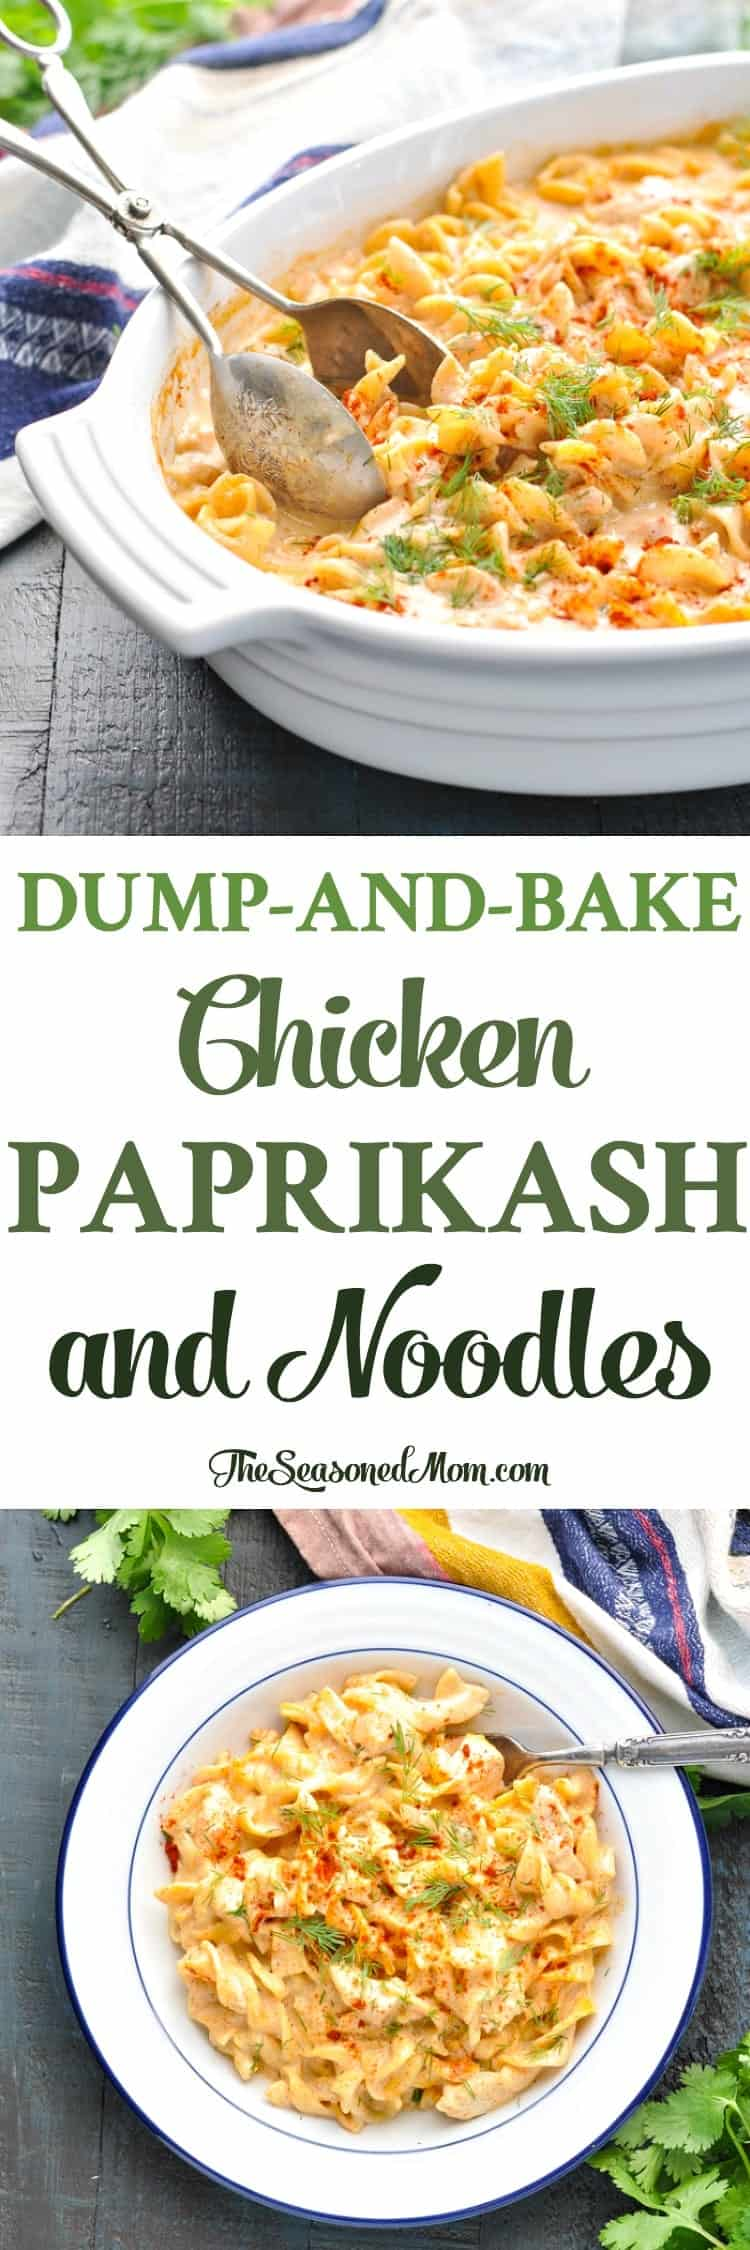 This Dump-and-Bake Chicken Paprikash and Noodles is an entire dinner that cooks in one dish! Chicken Recipes | Chicken Breast Recipes | Easy Dinner Recipes | Dinner Ideas #pasta #chicken #dinner